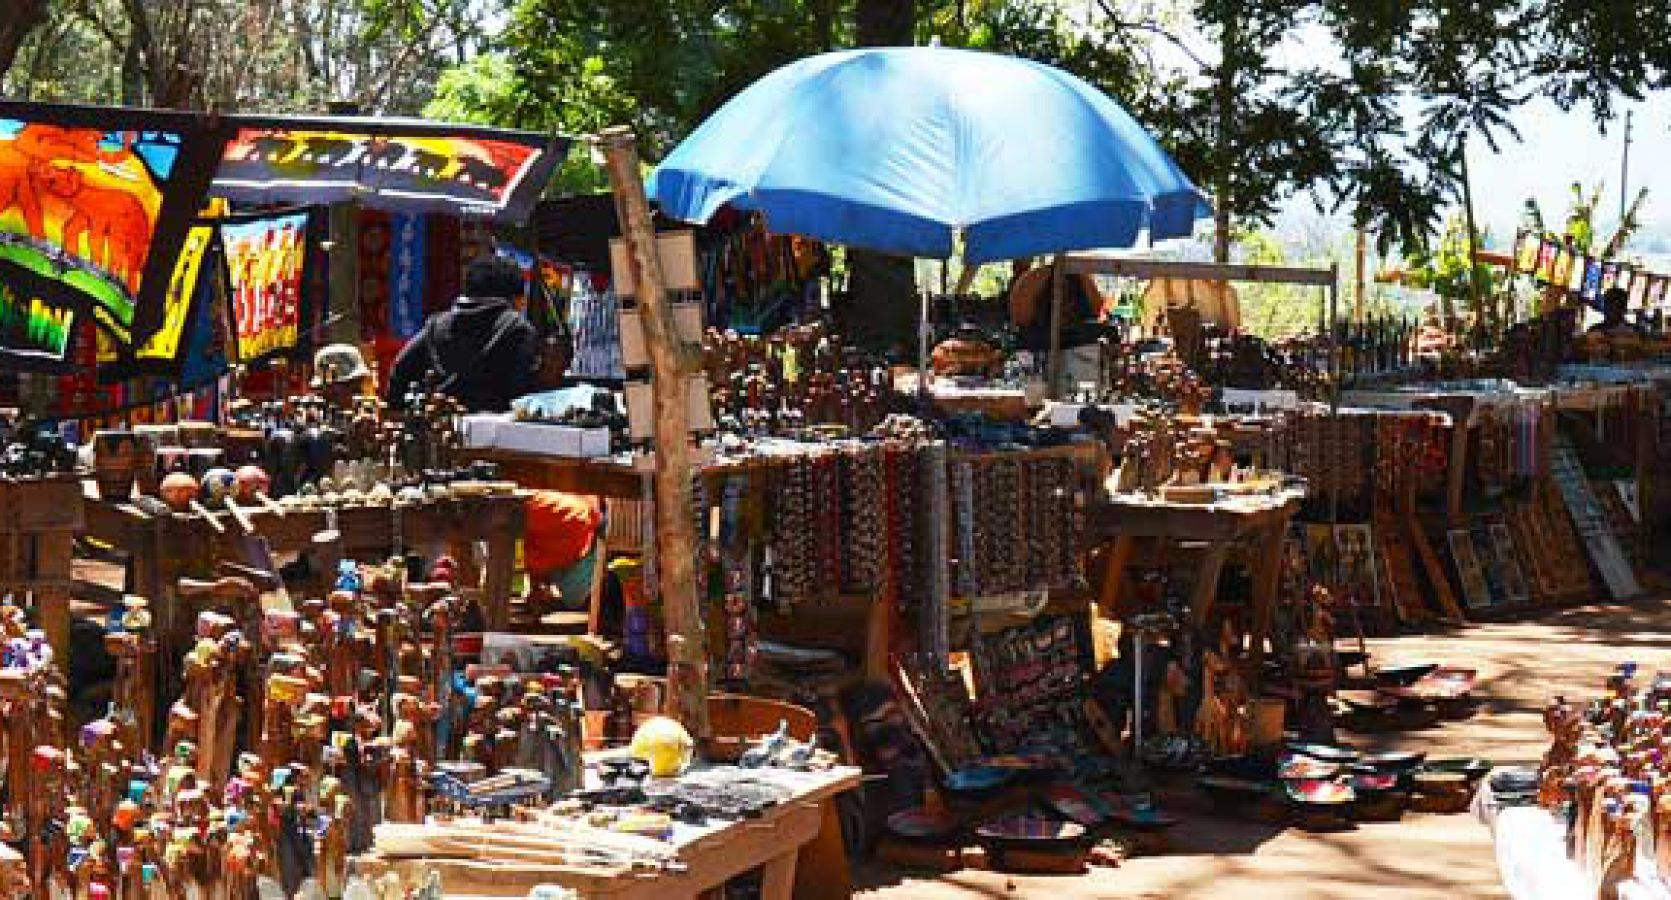 Craft markt bij Swazi Candles - ©Fair Mundo Travel